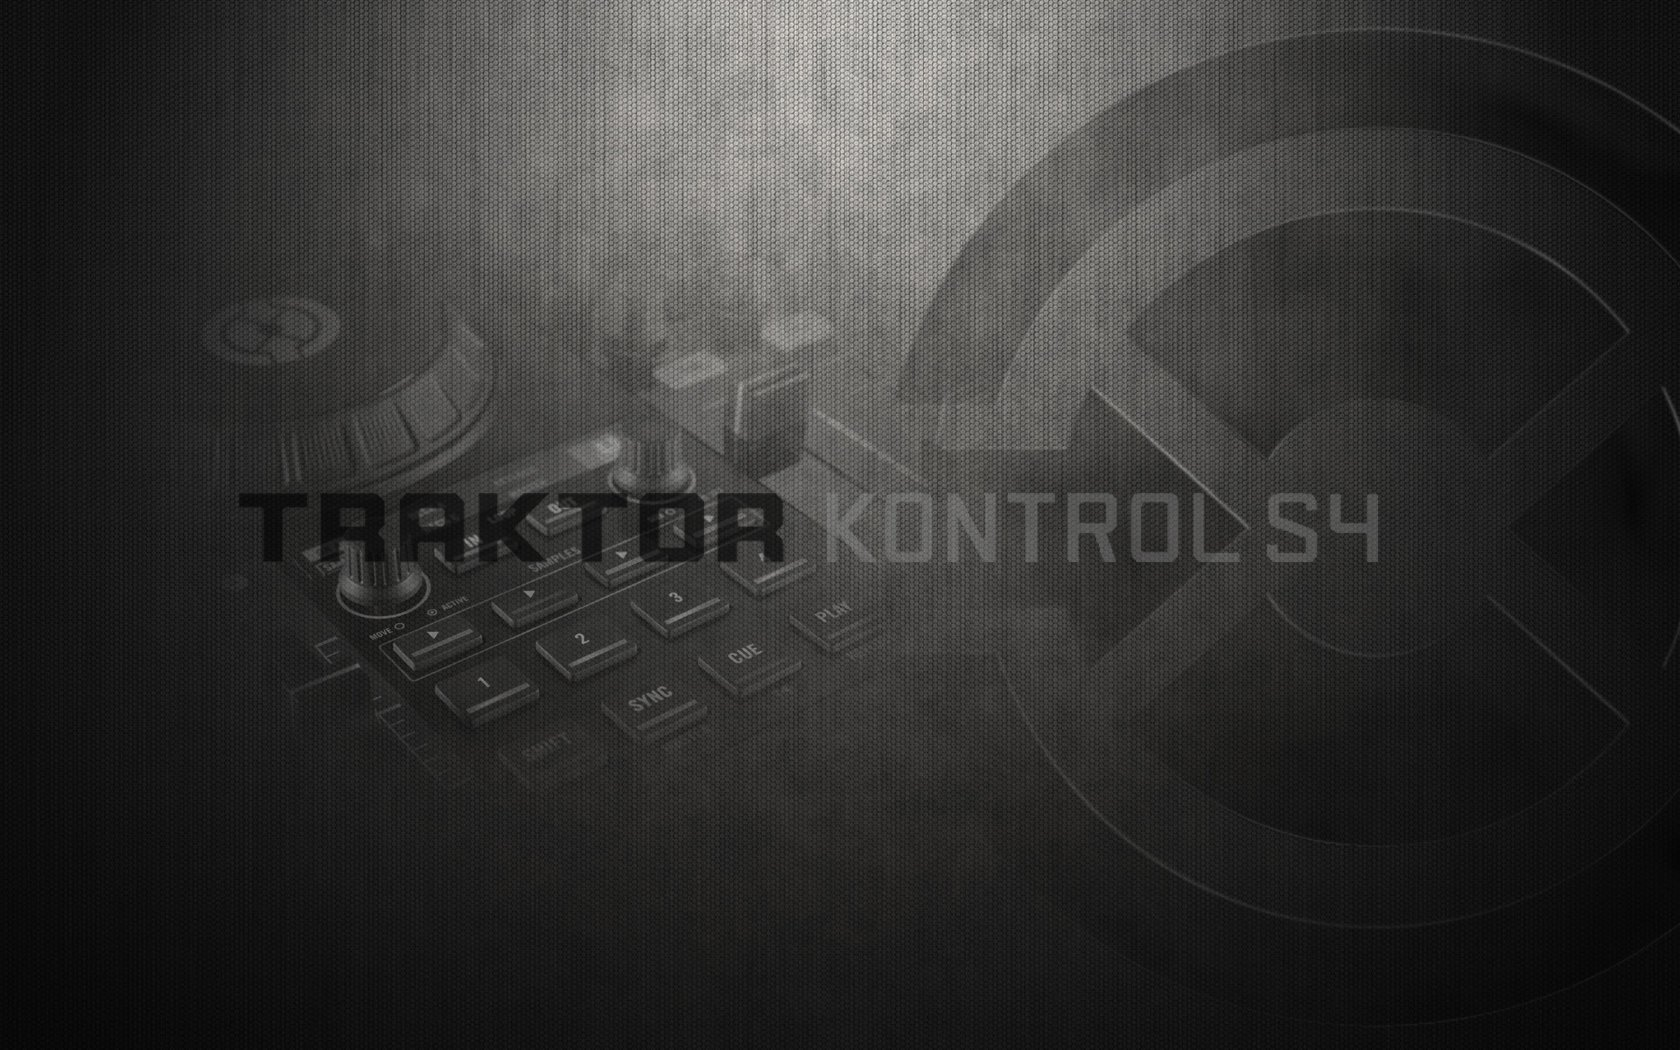 Pin 1680x1050 Native Instruments Wallpaper Producers Musicians on 1680x1050